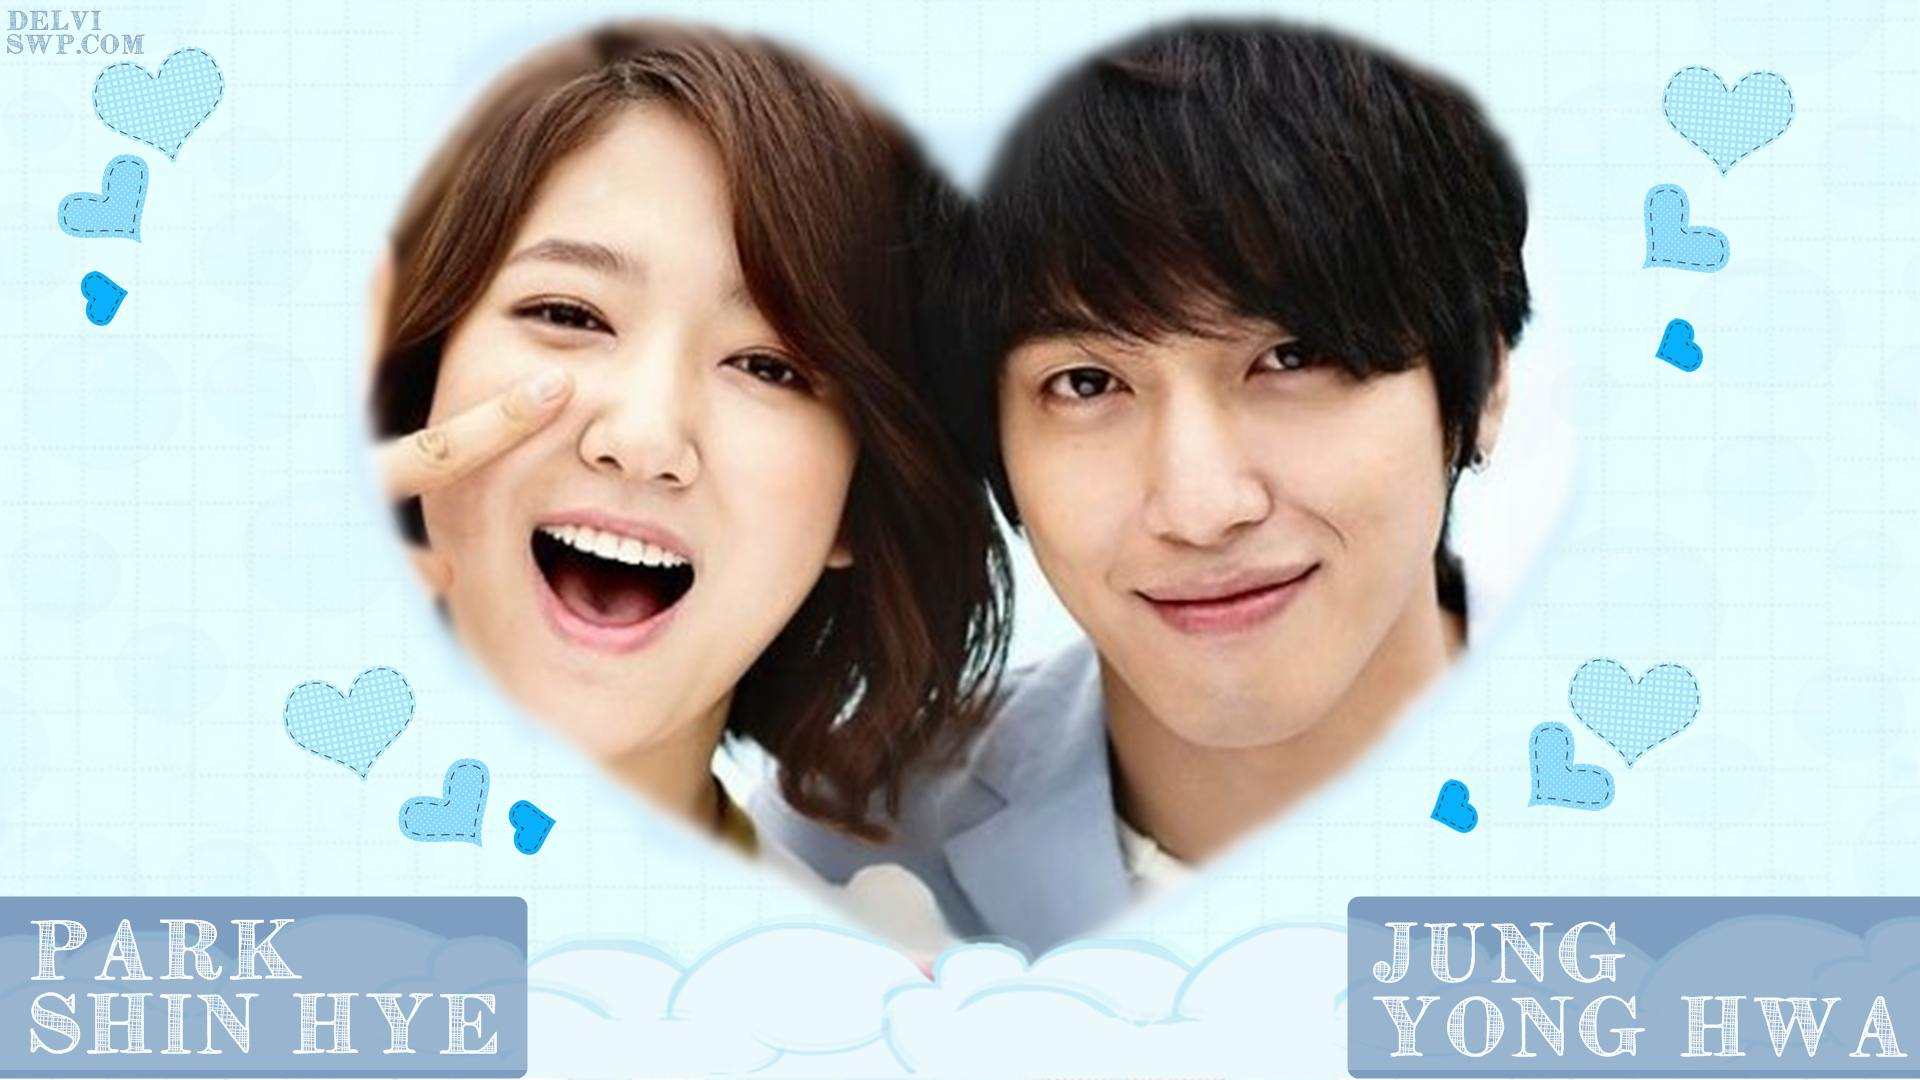 yonghwa and park shin hye dating 2013 nissan